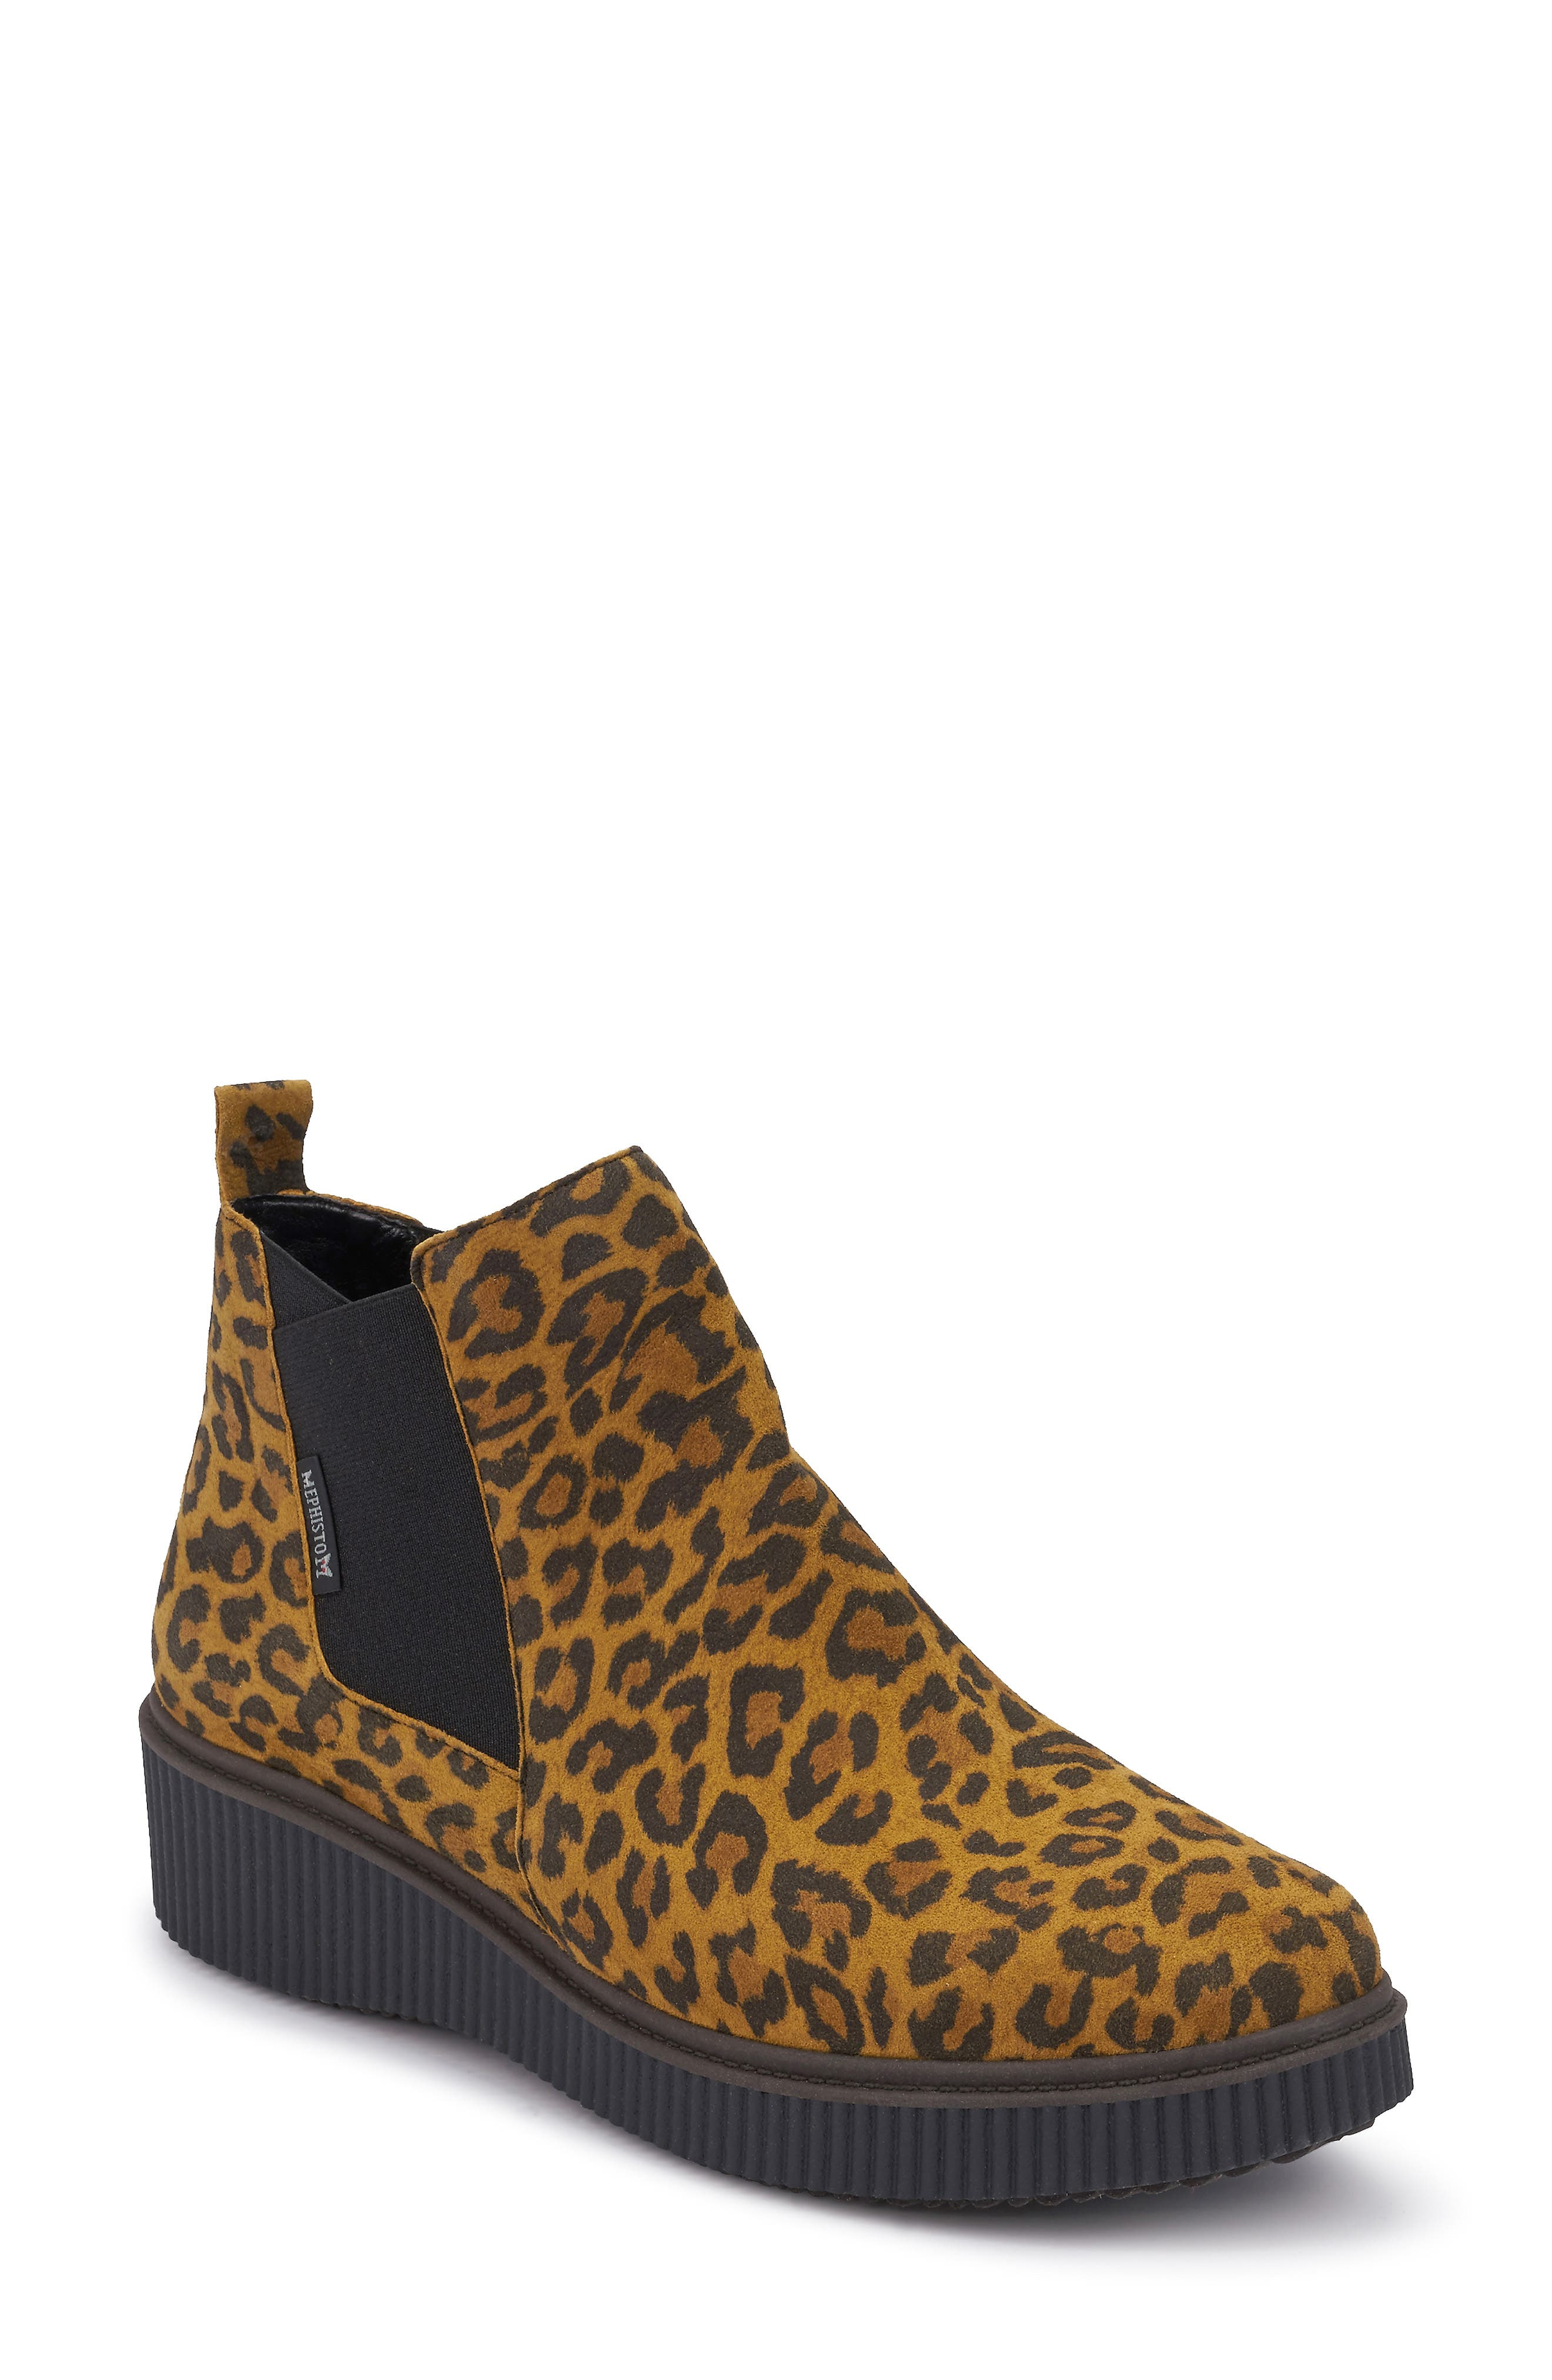 Mephisto Shoes Sale \u0026 Clearance | Nordstrom